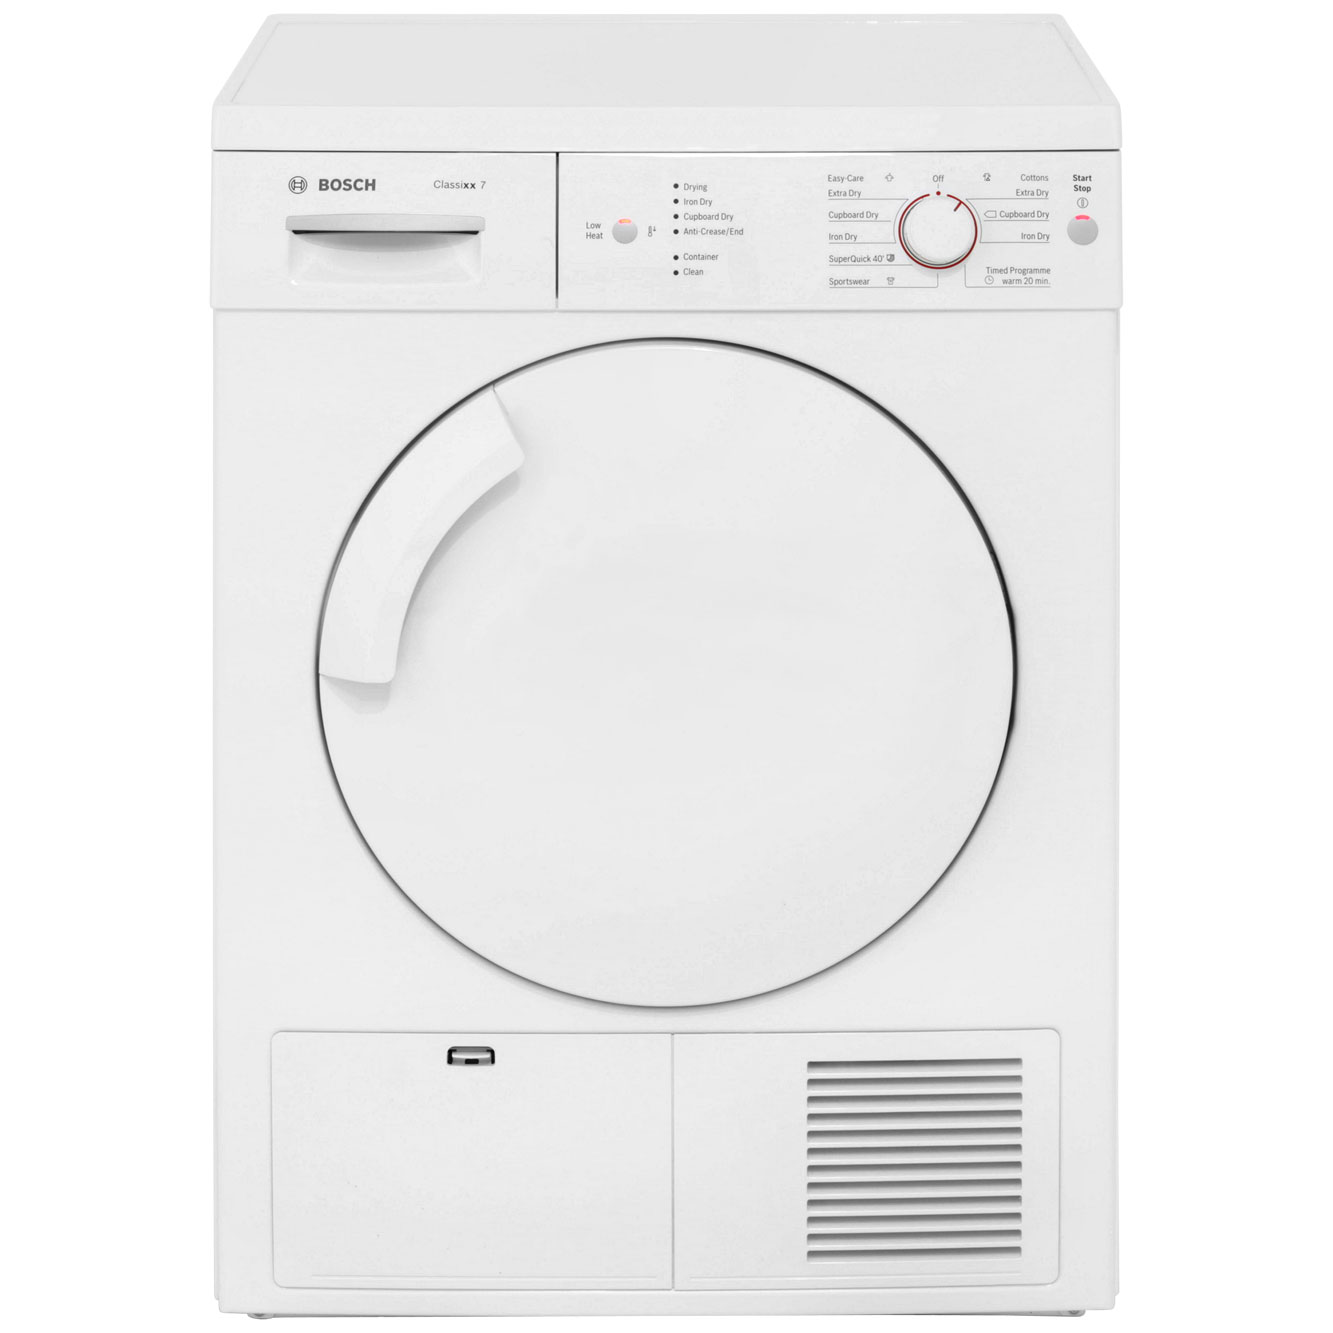 siemens e44 10 dryer manual siemens e44 10 manual download free manuals rh lifeinsurancequotes online org bosch logixx 8 tumble dryer manual bosch logixx 8 tumble dryer manual